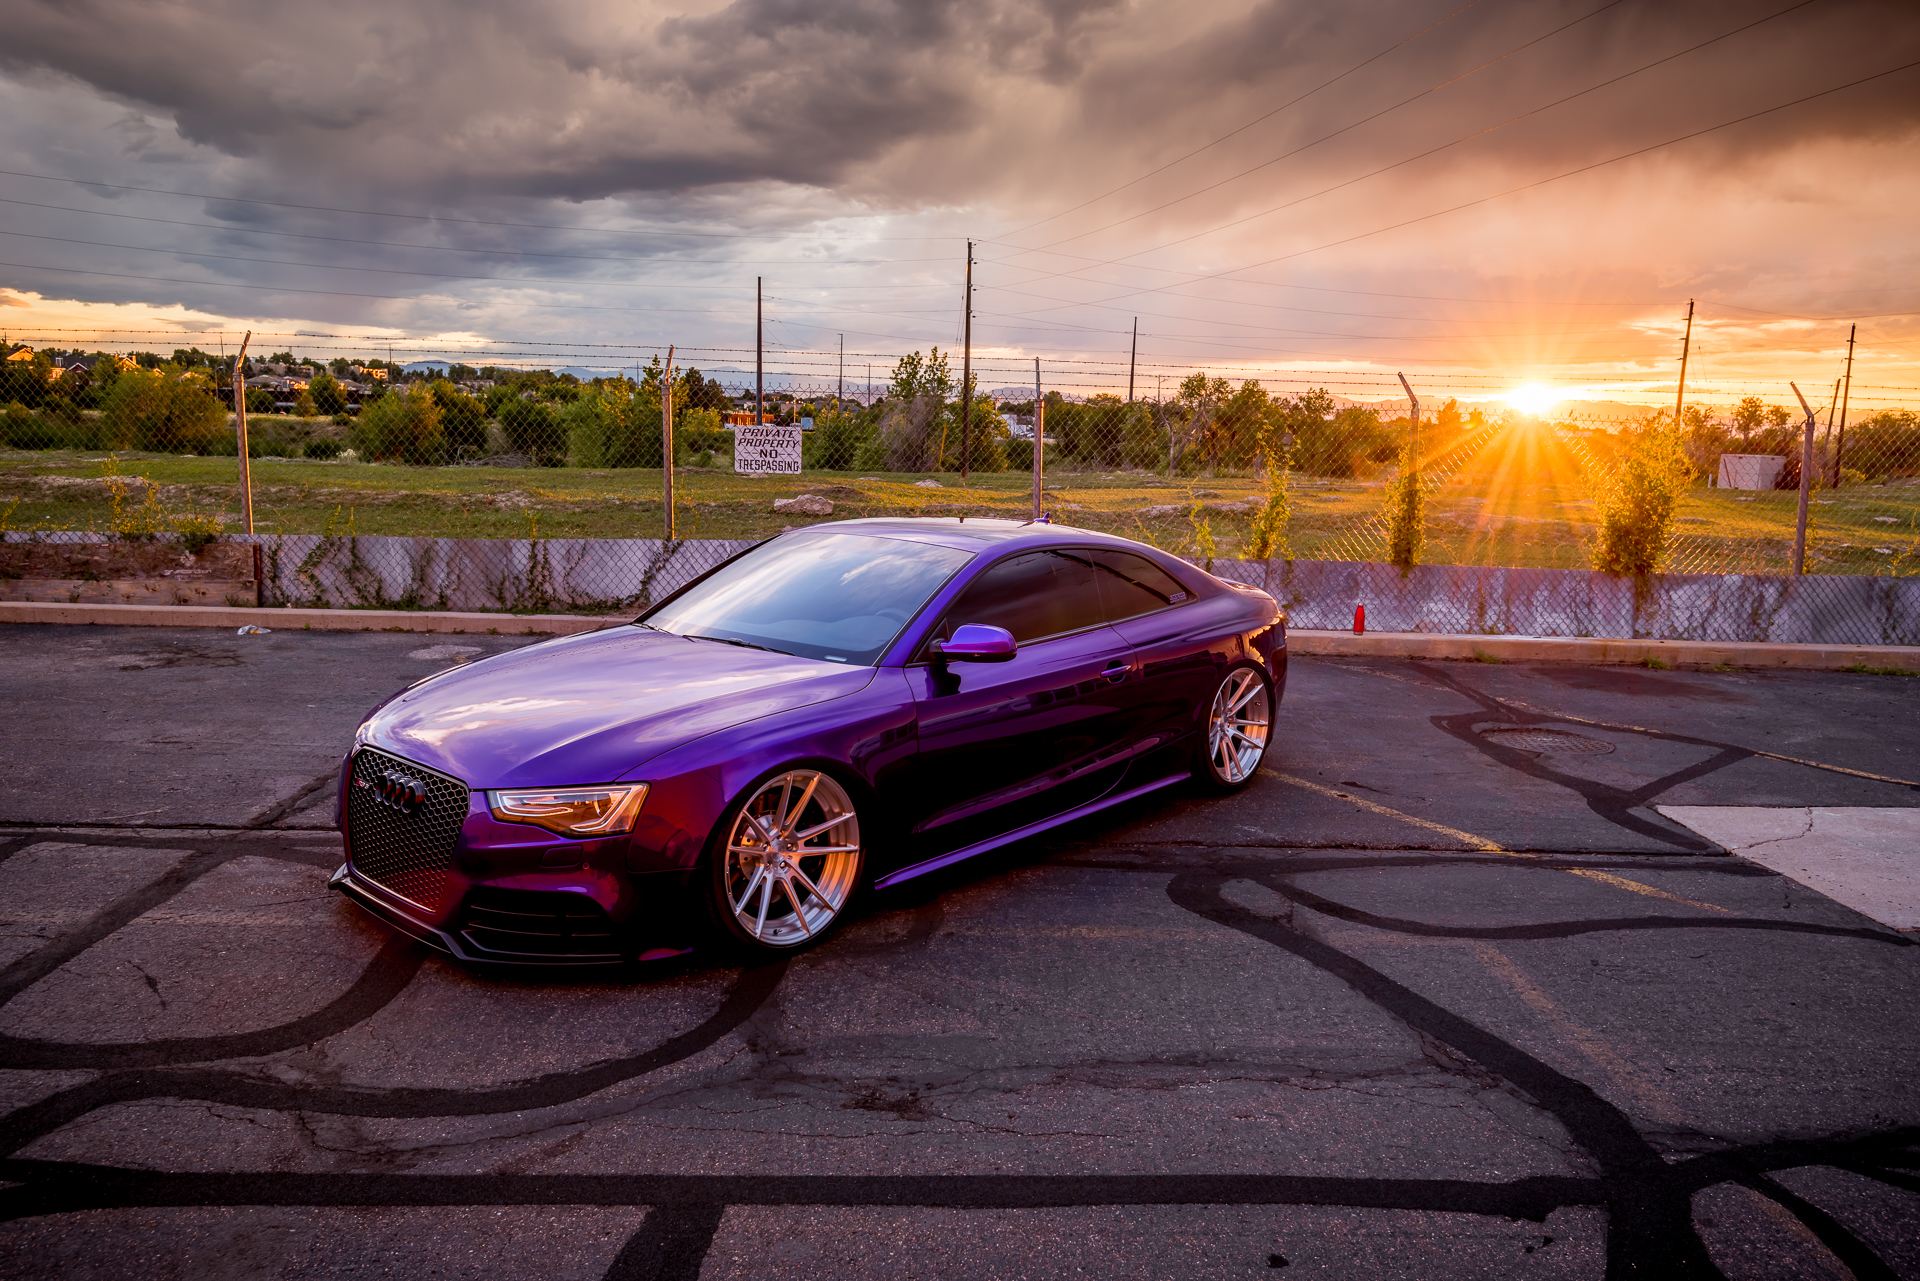 Audi RS5 Sunset